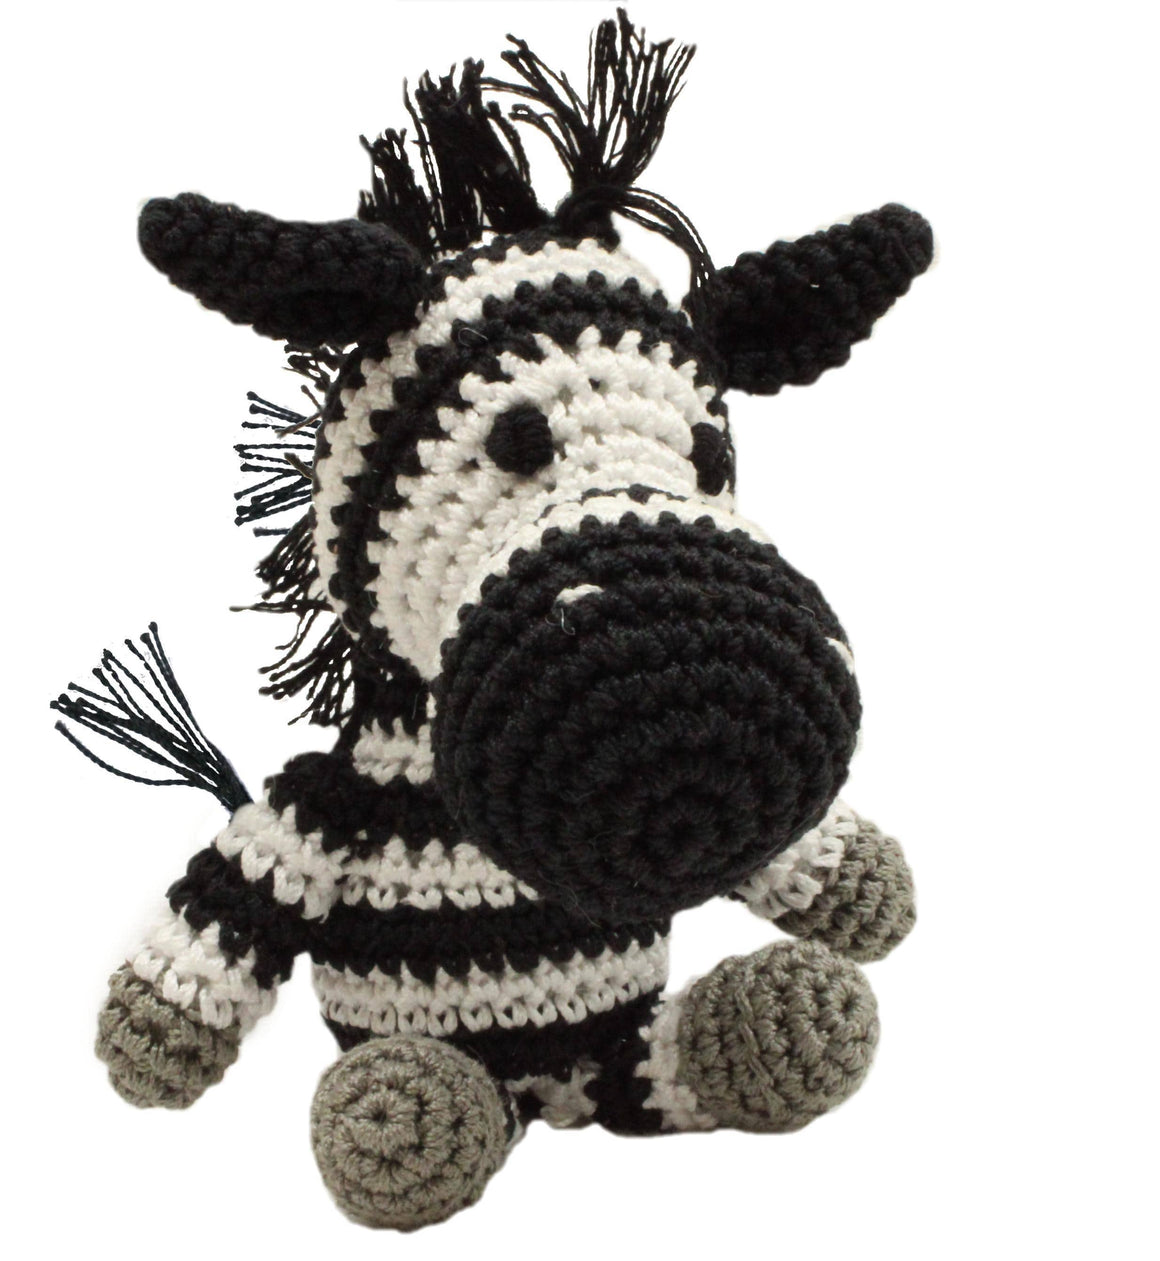 Doggy Stylz Dog-products Toys Knit Knacks Zsa Zsa The Zebra Organic Cotton Small Dog Toy